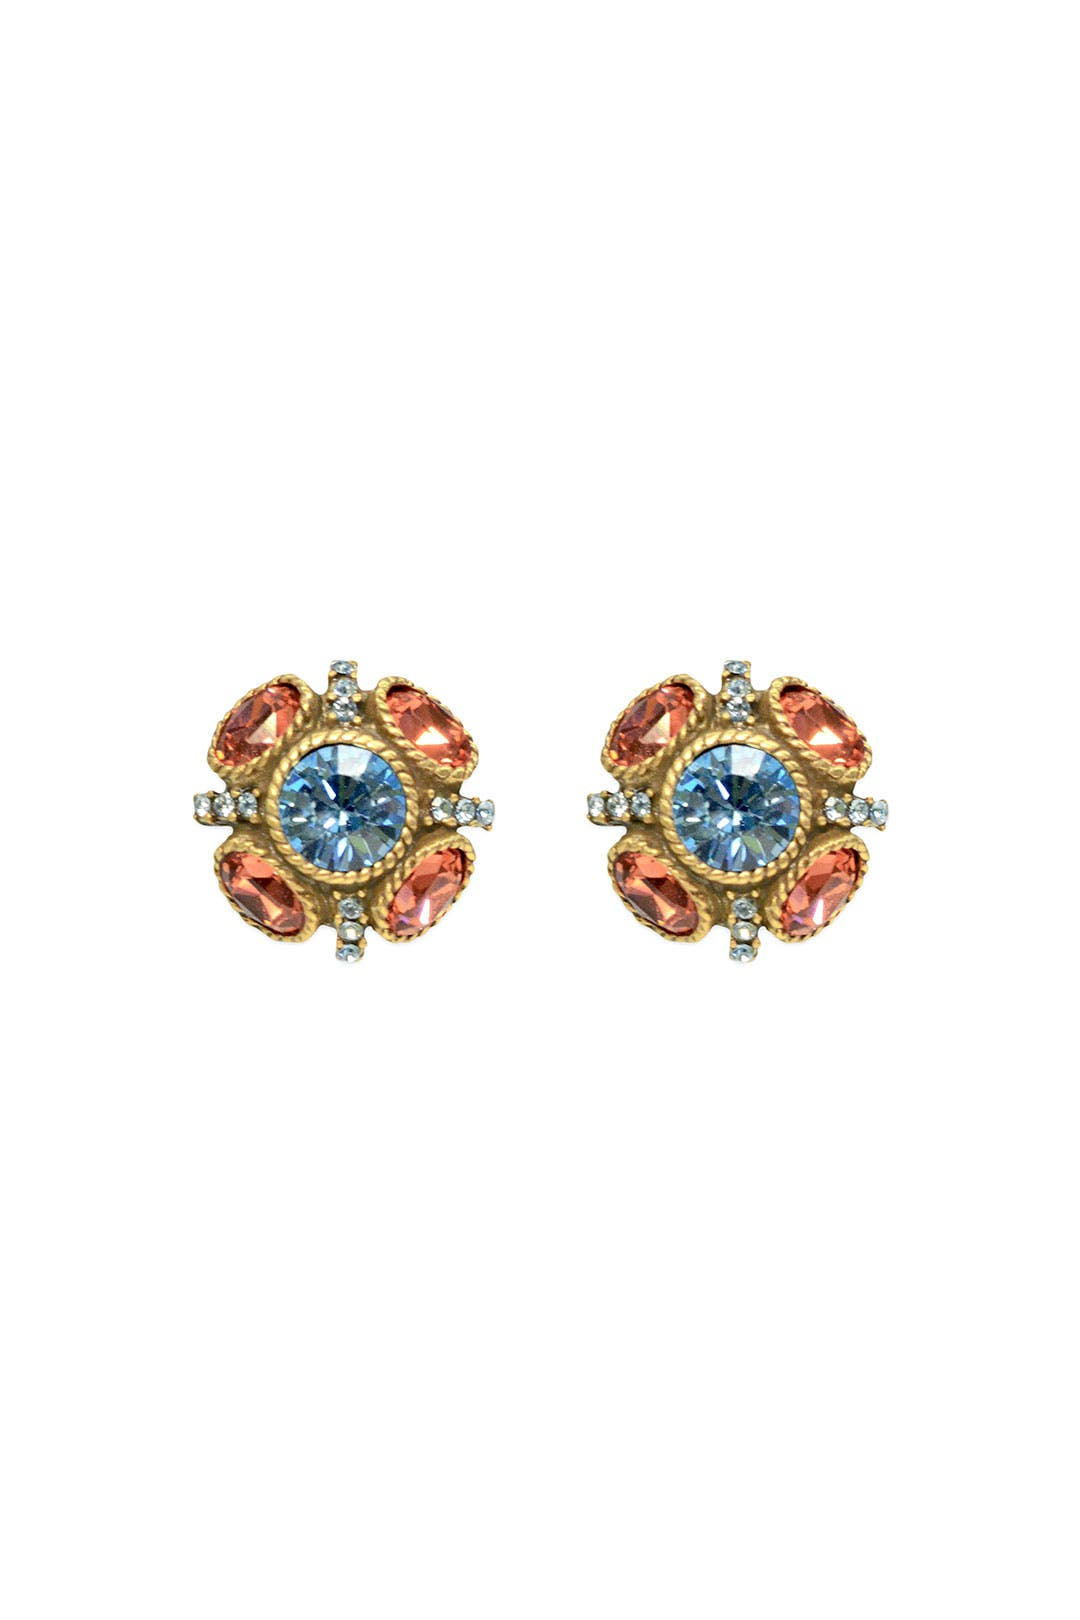 Sailor Studs by Oscar de la Renta